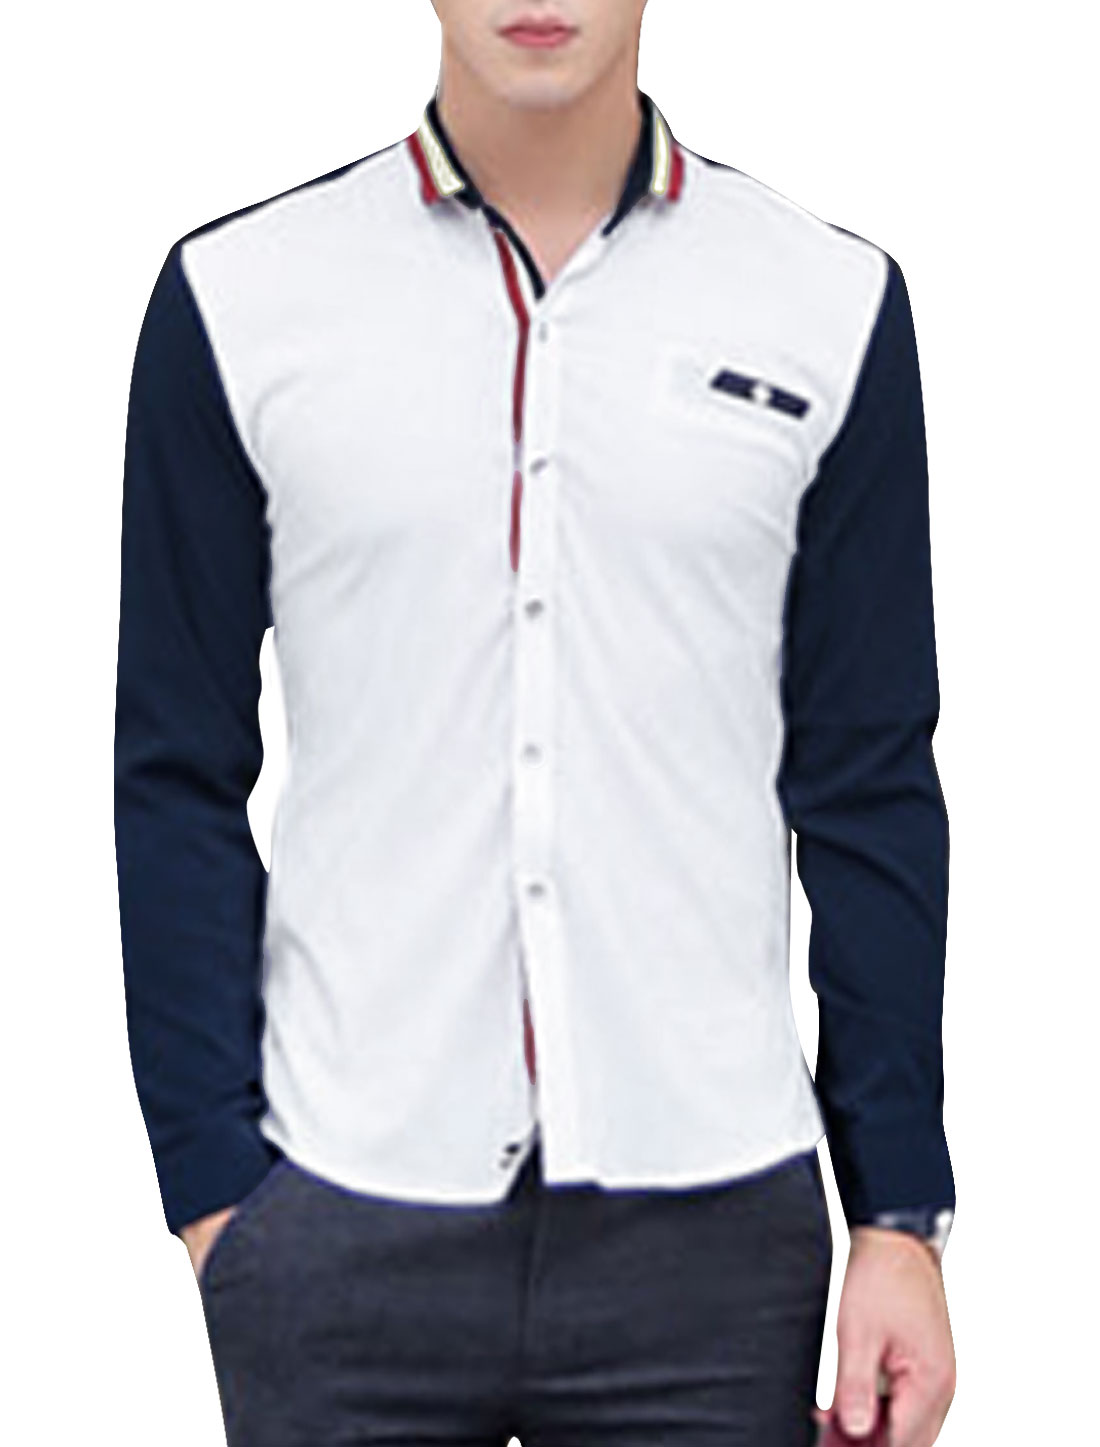 Men Convertible Collar Buttoned Cuffs Contrast Long Sleeves Leisure Shirt White M